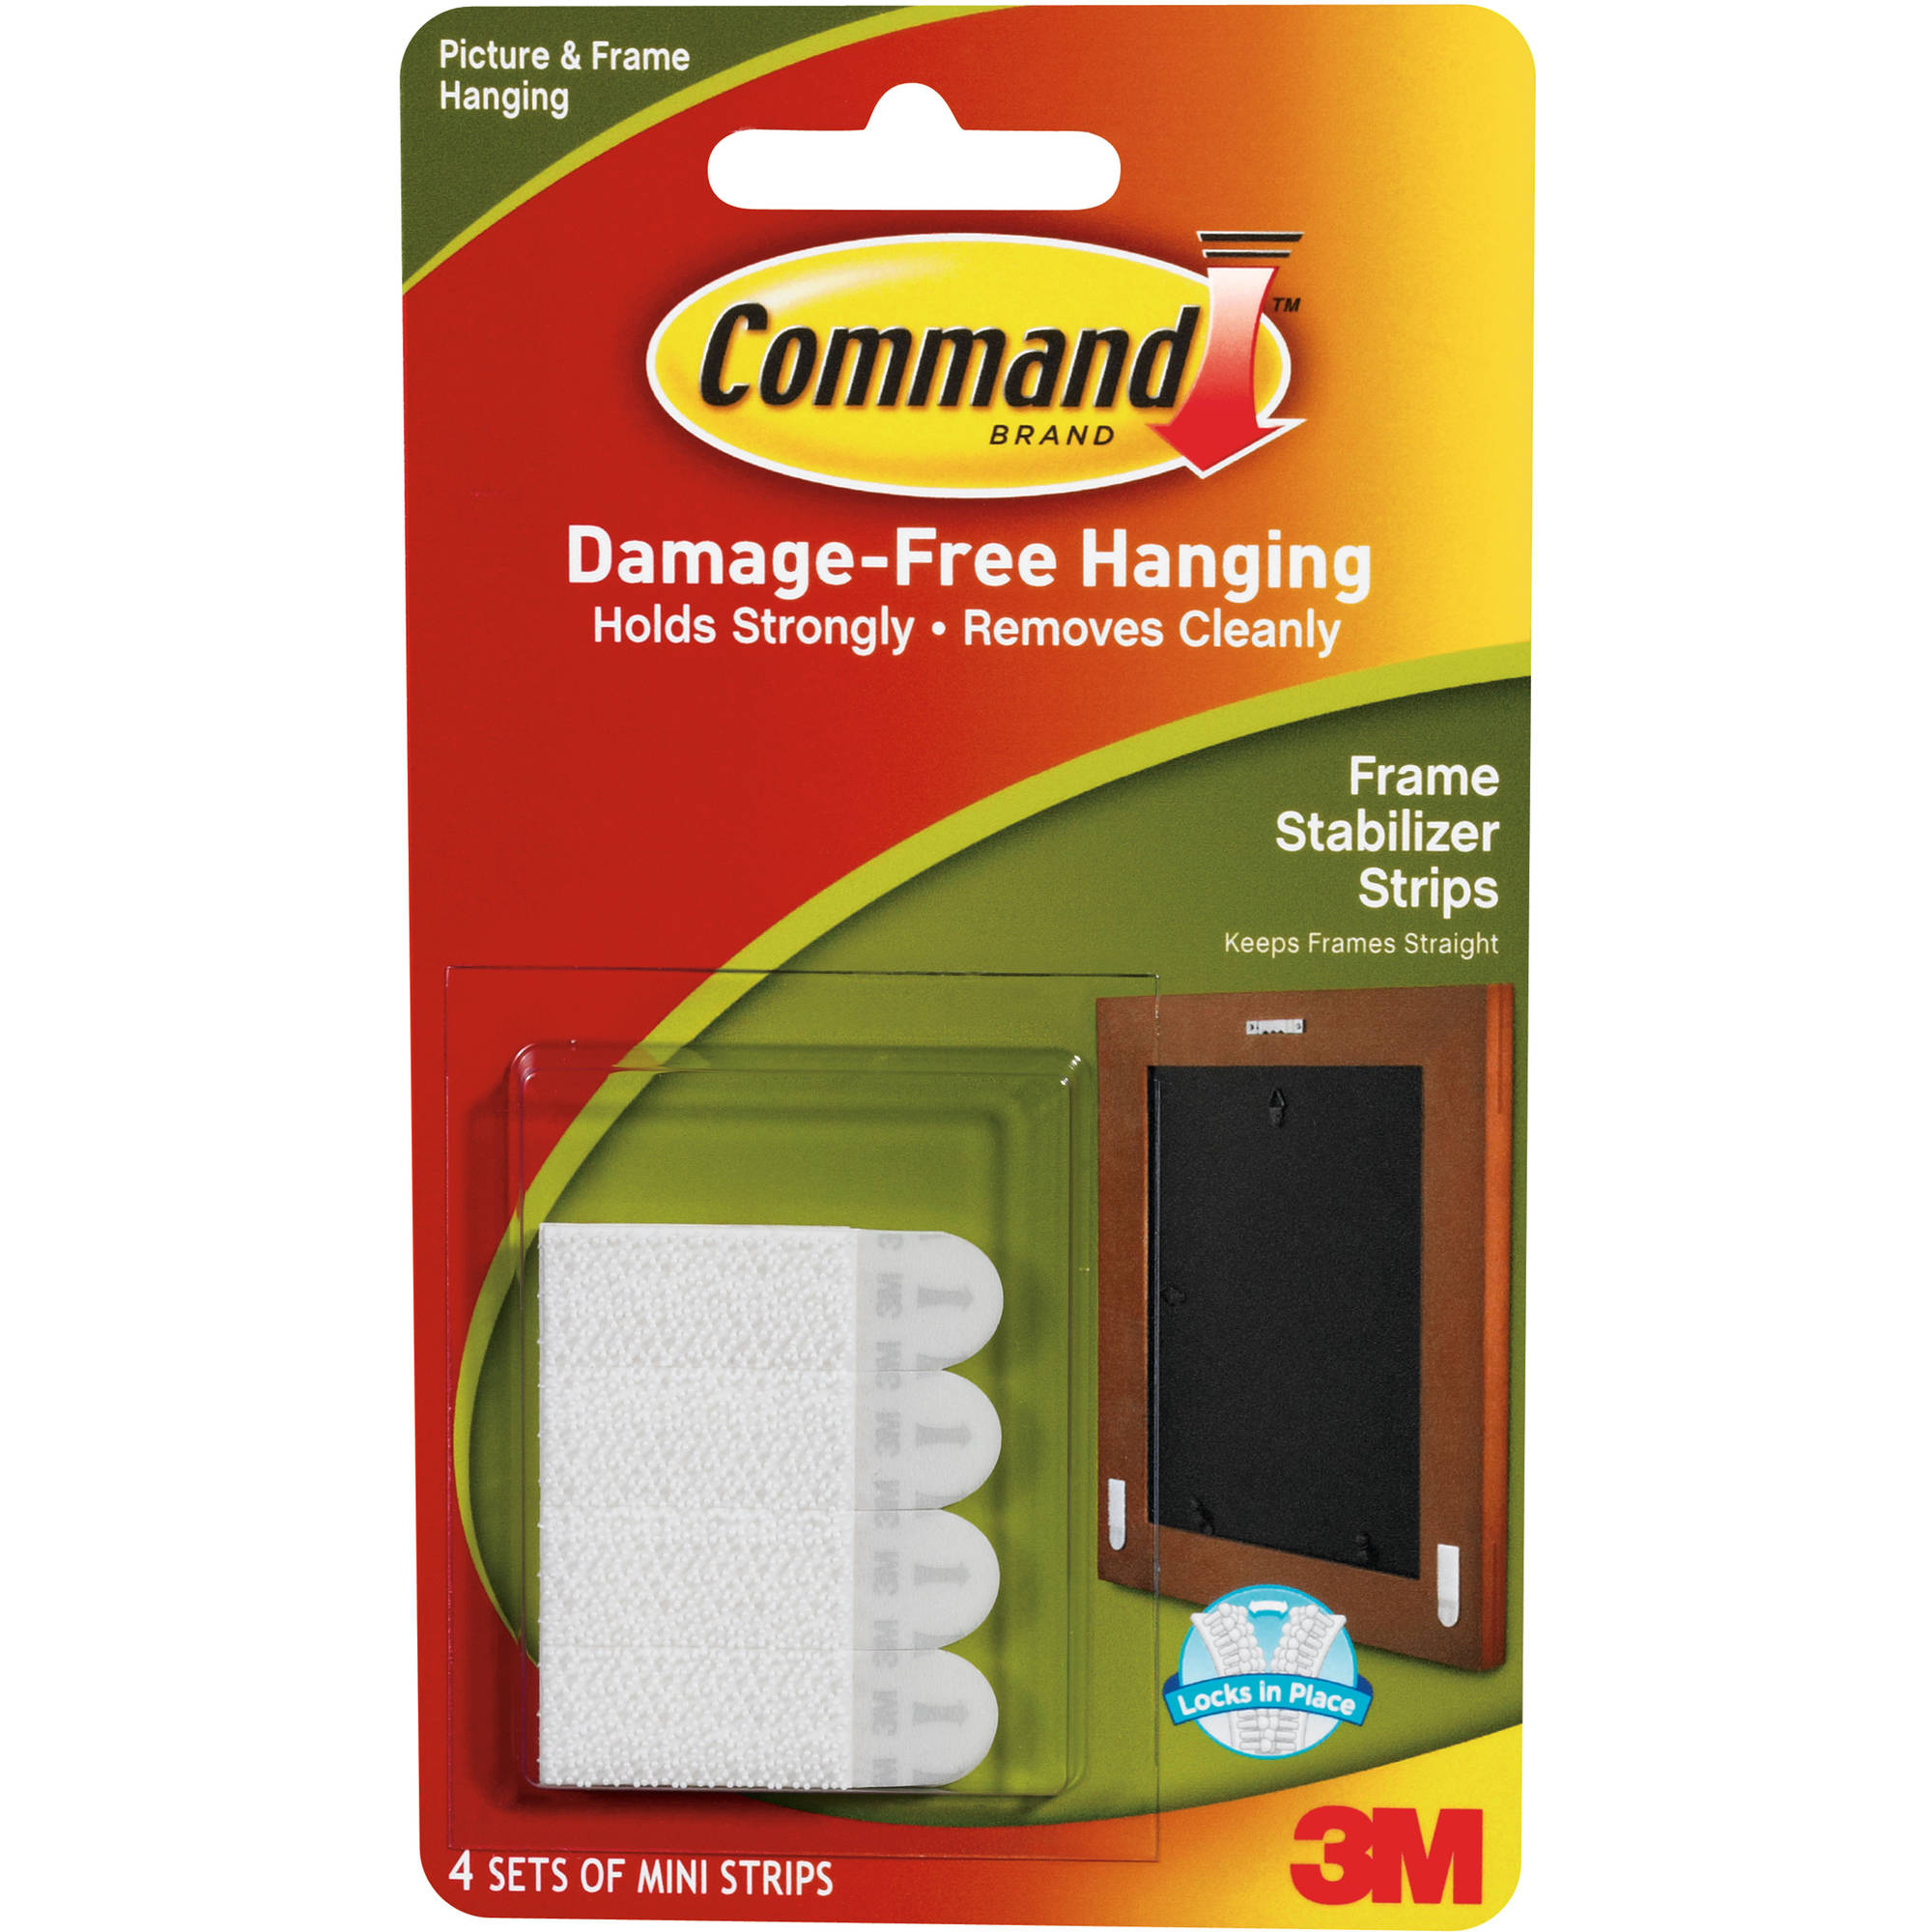 Command Frame Stabilizer Strips, White, 4 Sets of Strips/Pack